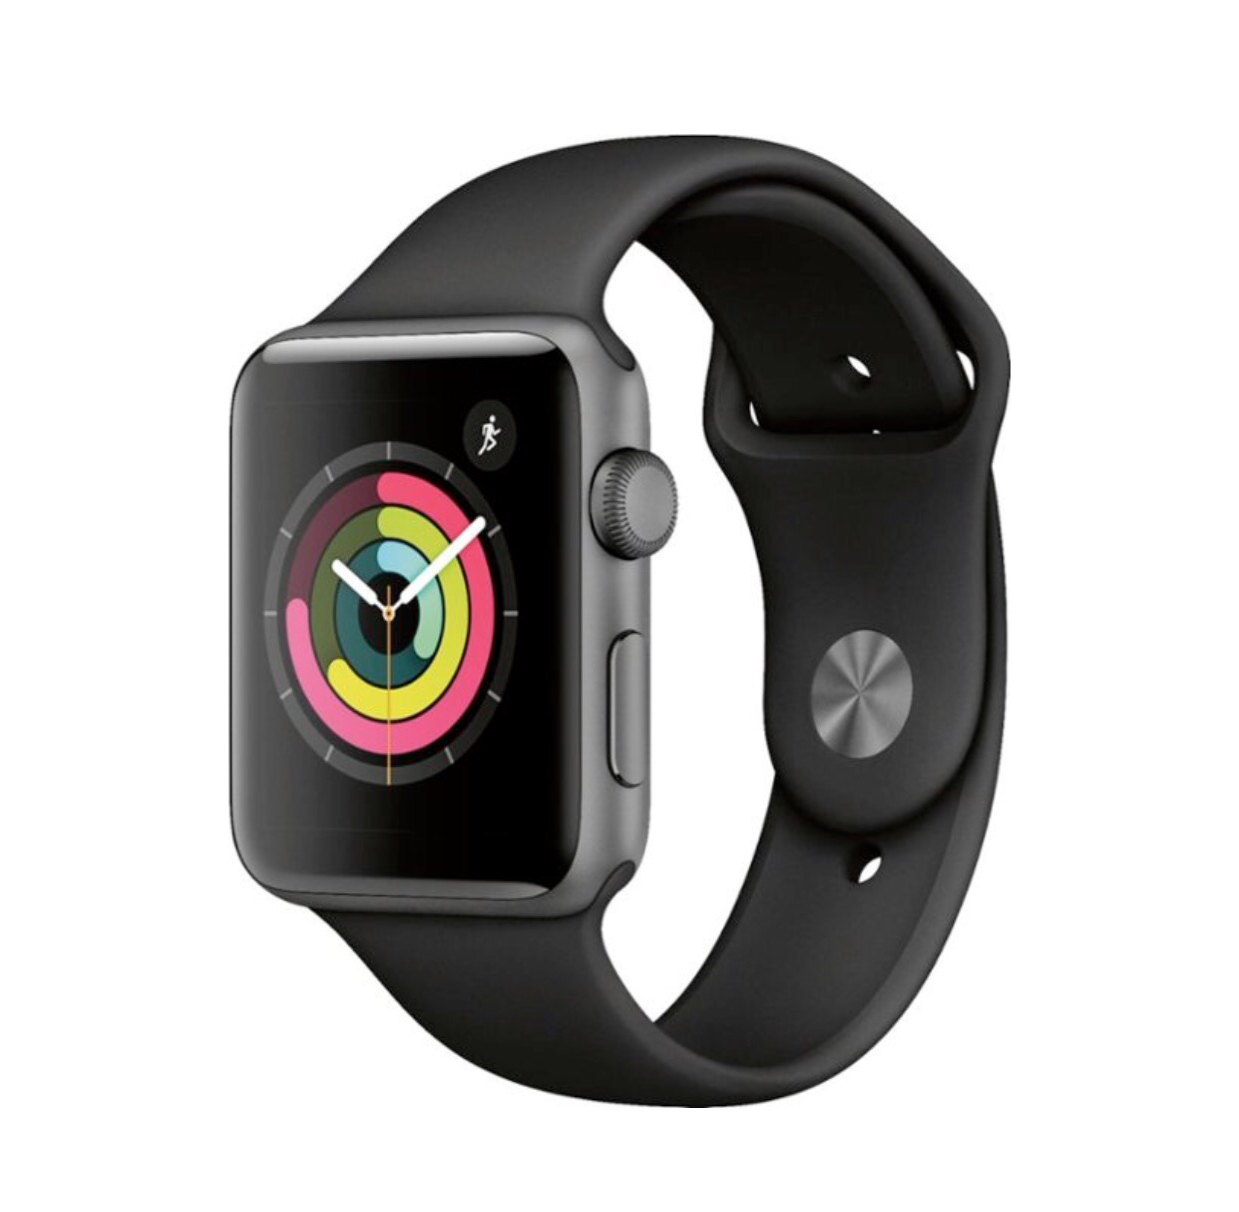 Wholesale Apple Watch Series 3 (GPS) 42mm Space Gray Aluminum Case - Black Sport Band